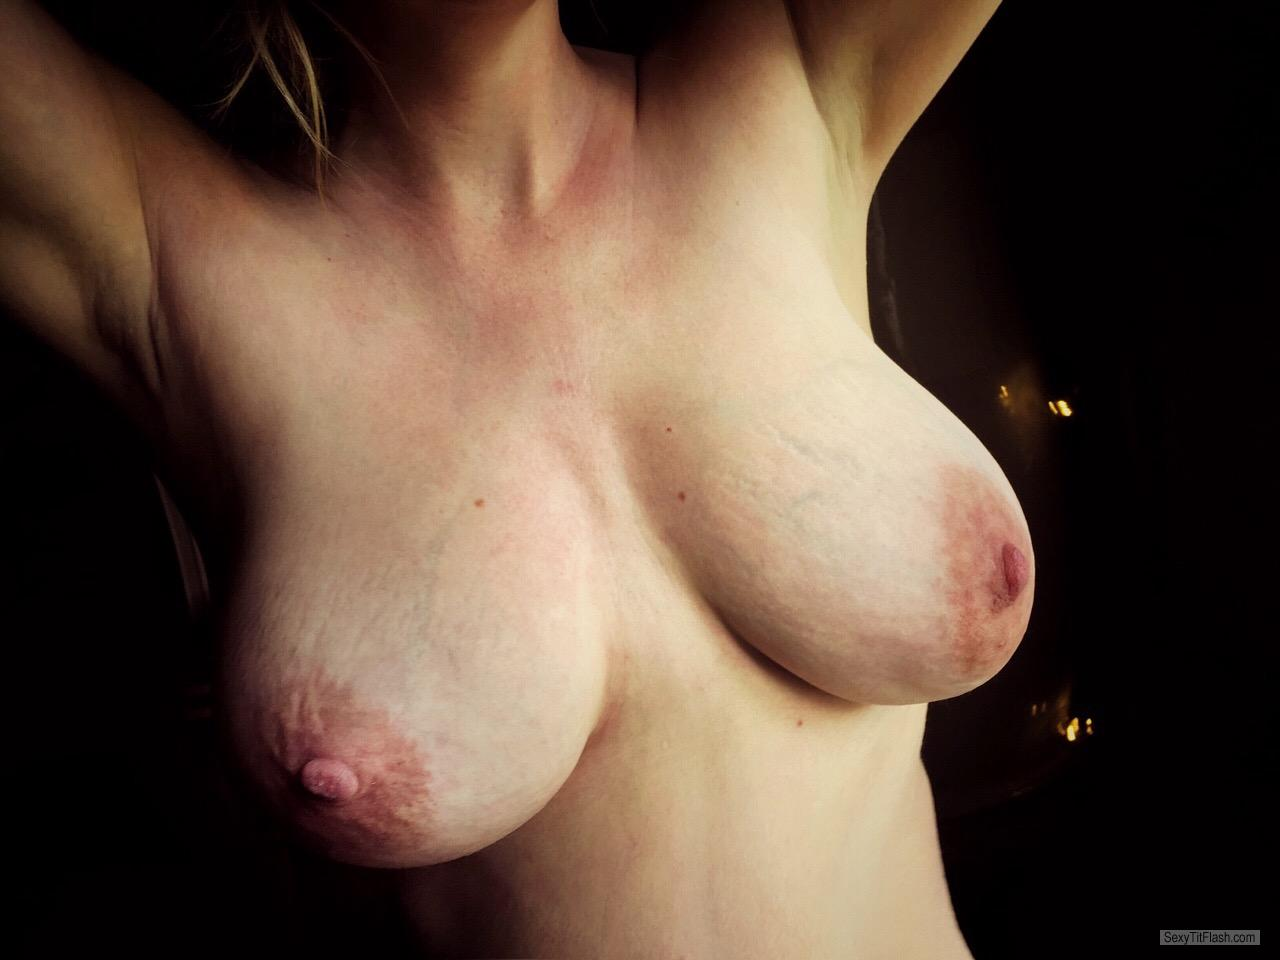 Tit Flash: My Very Big Tits - Topless North from Canada